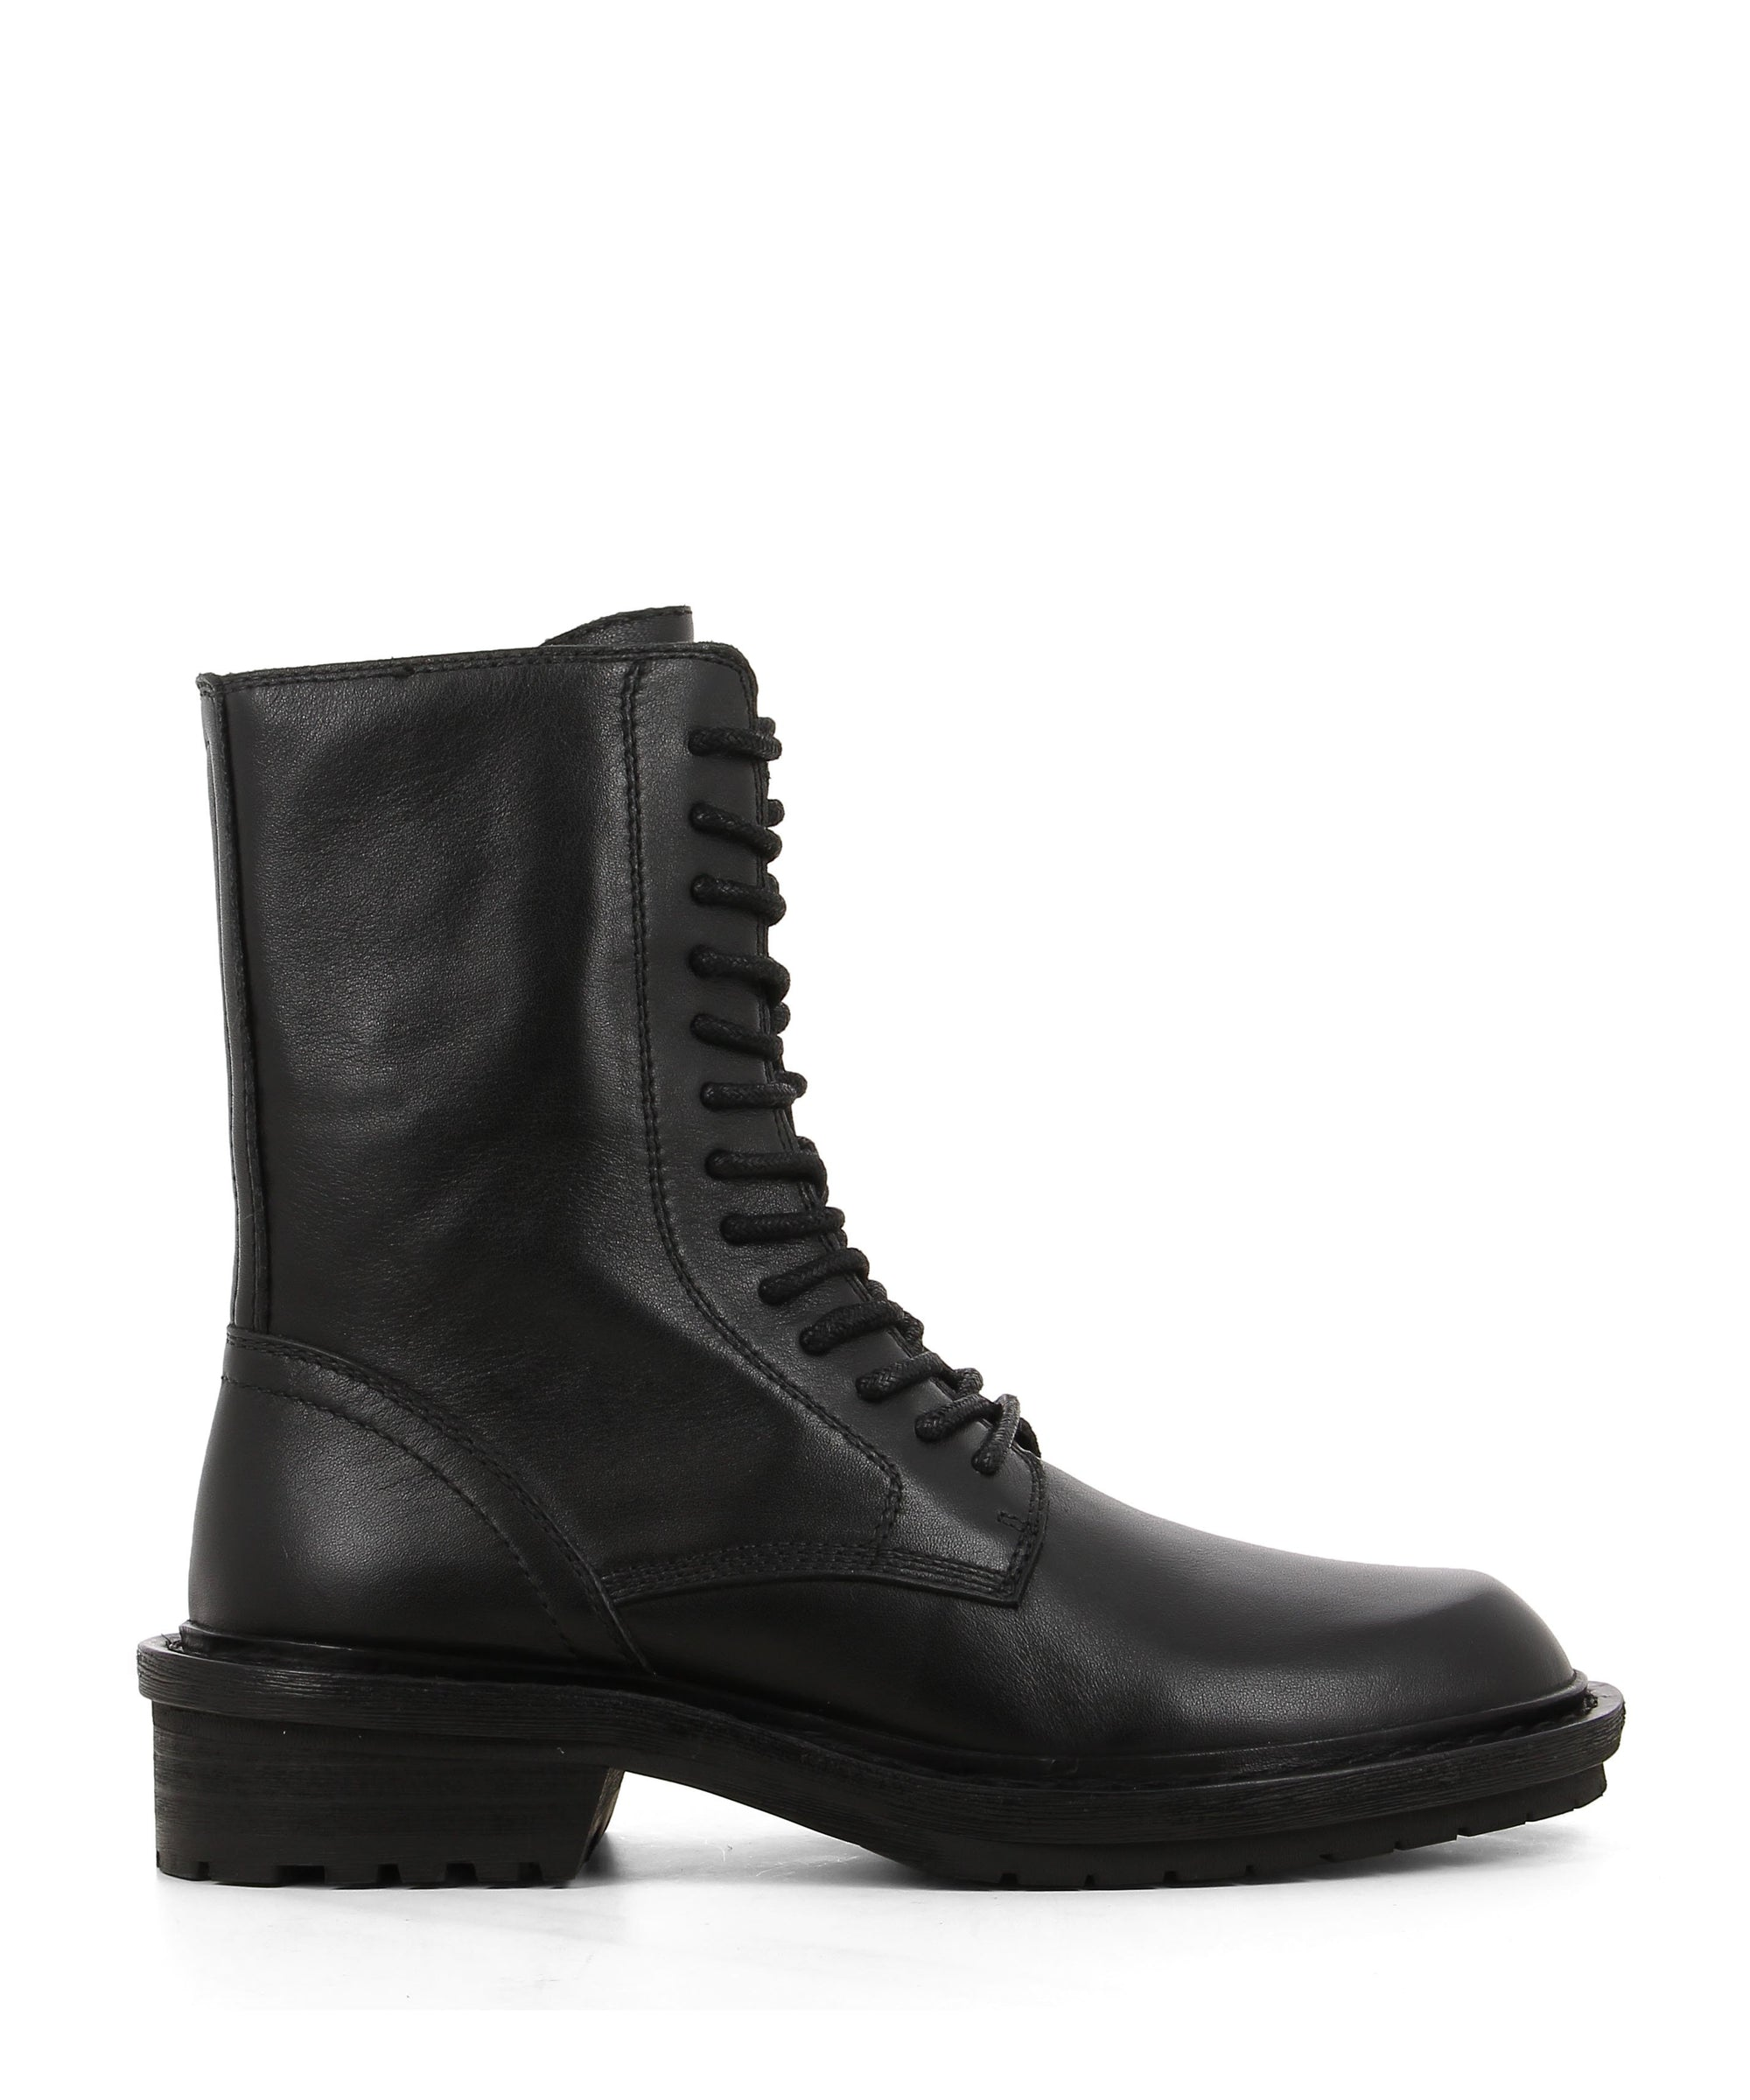 Black leather lace up combat boots with zipper fastenings, a block heel and a rounded toe by 2 Baia Vista.